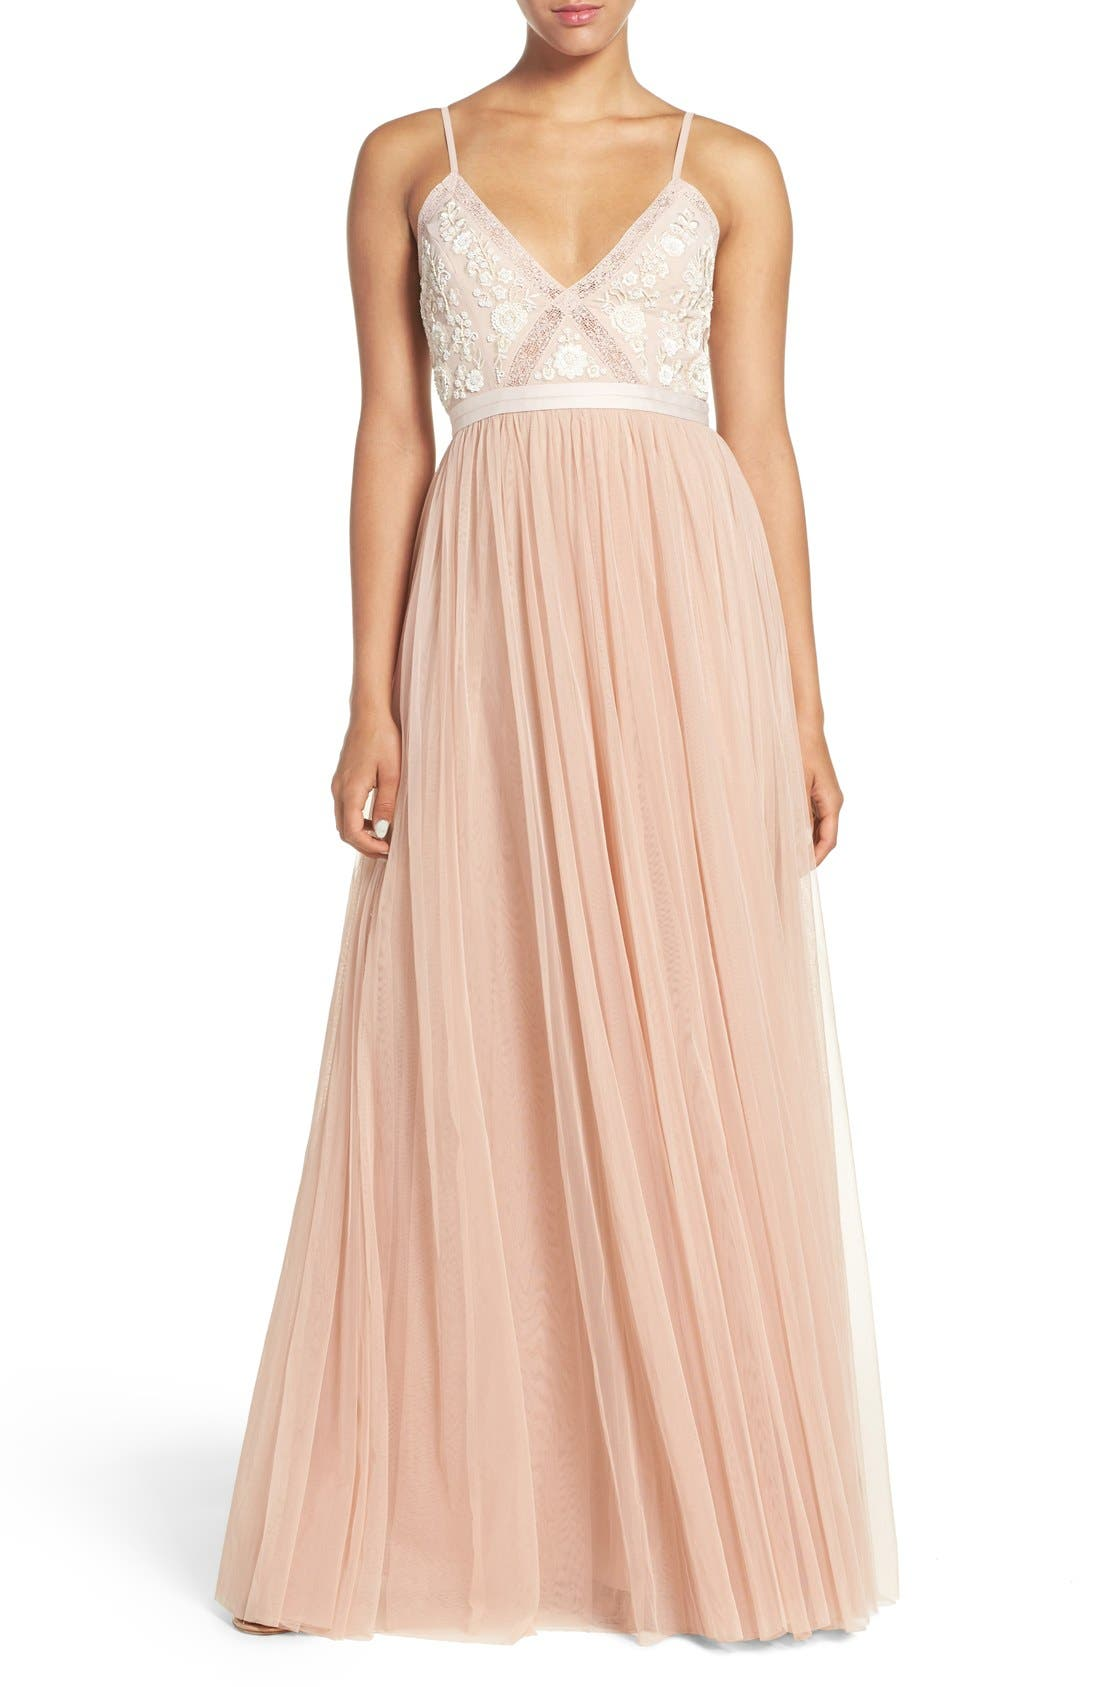 Main Image - Needle & Thread Embroidered Bodice Tulle Gown